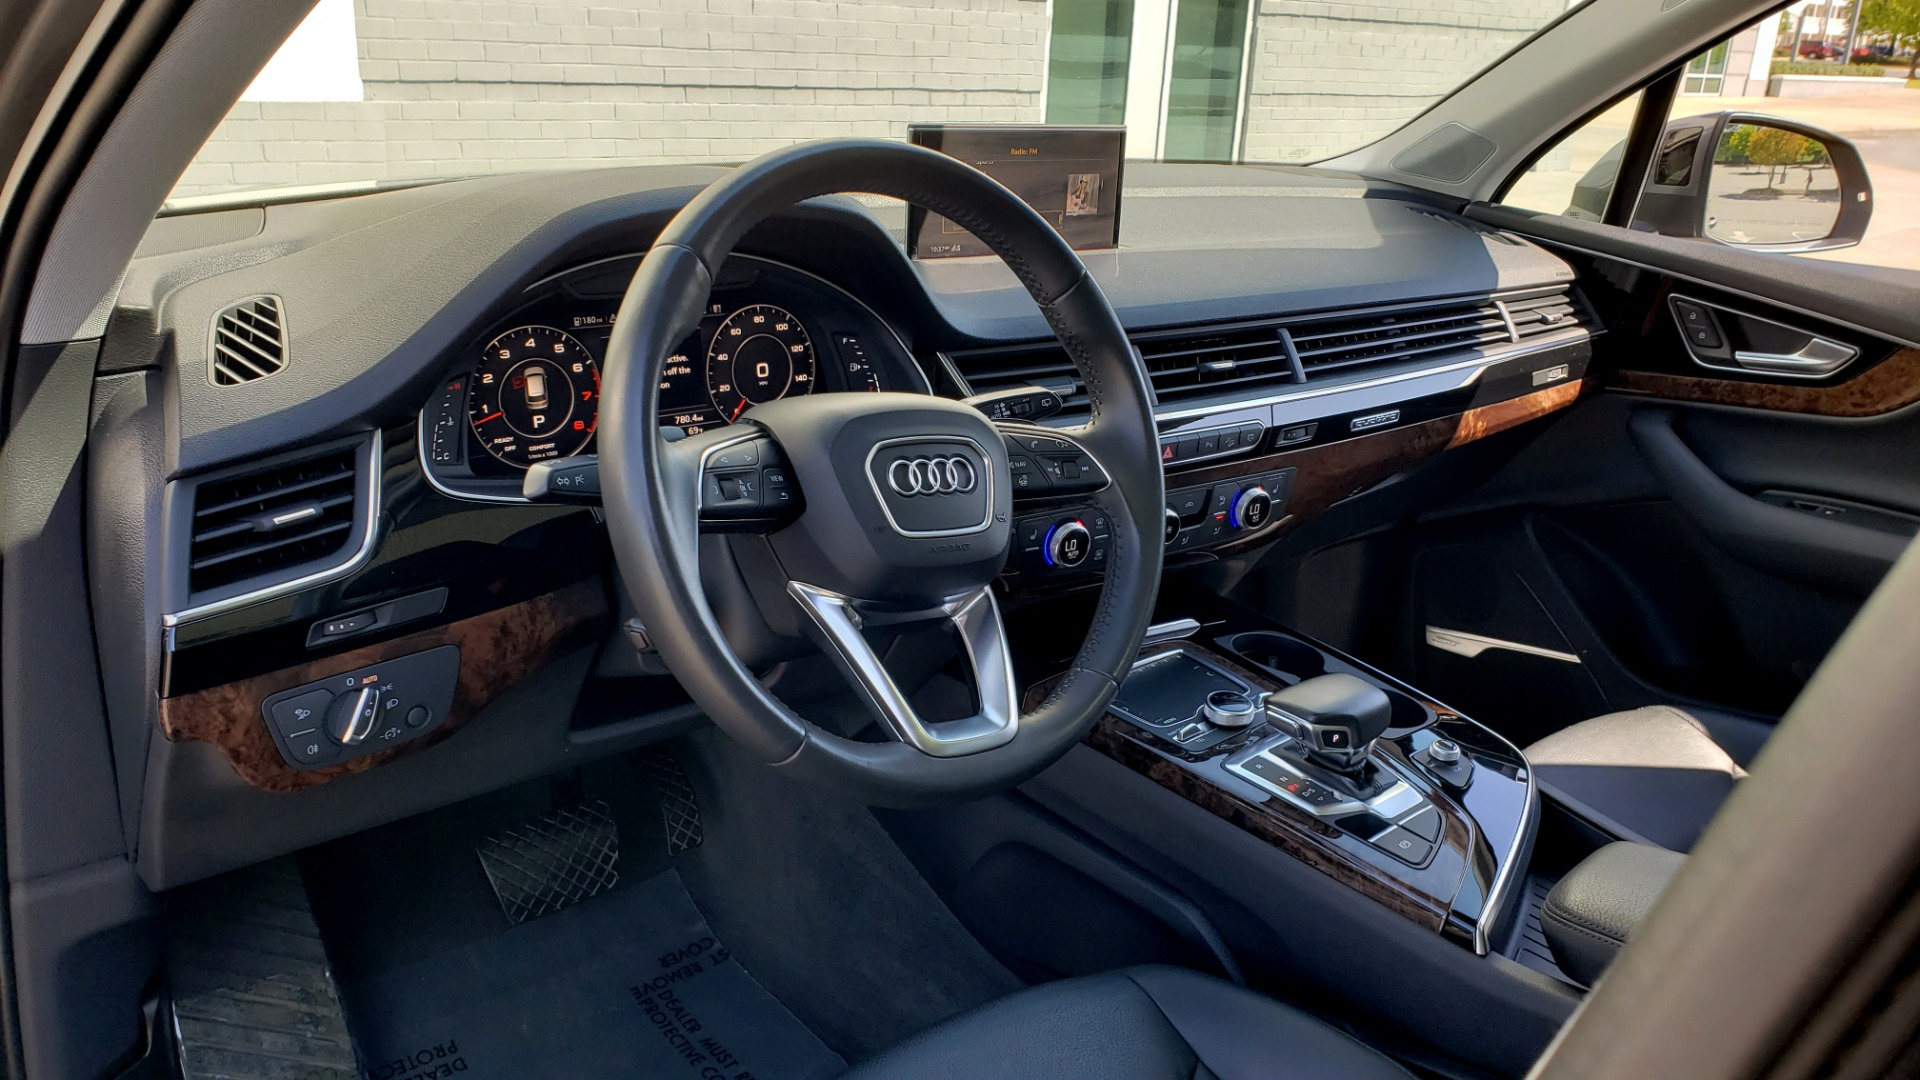 Used 2018 Audi Q7 PREMIUM PLUS TIPTRONIC / NAV / SUNROOF / VISION PKG / CLD WTHR / REARVIEW for sale $44,395 at Formula Imports in Charlotte NC 28227 41